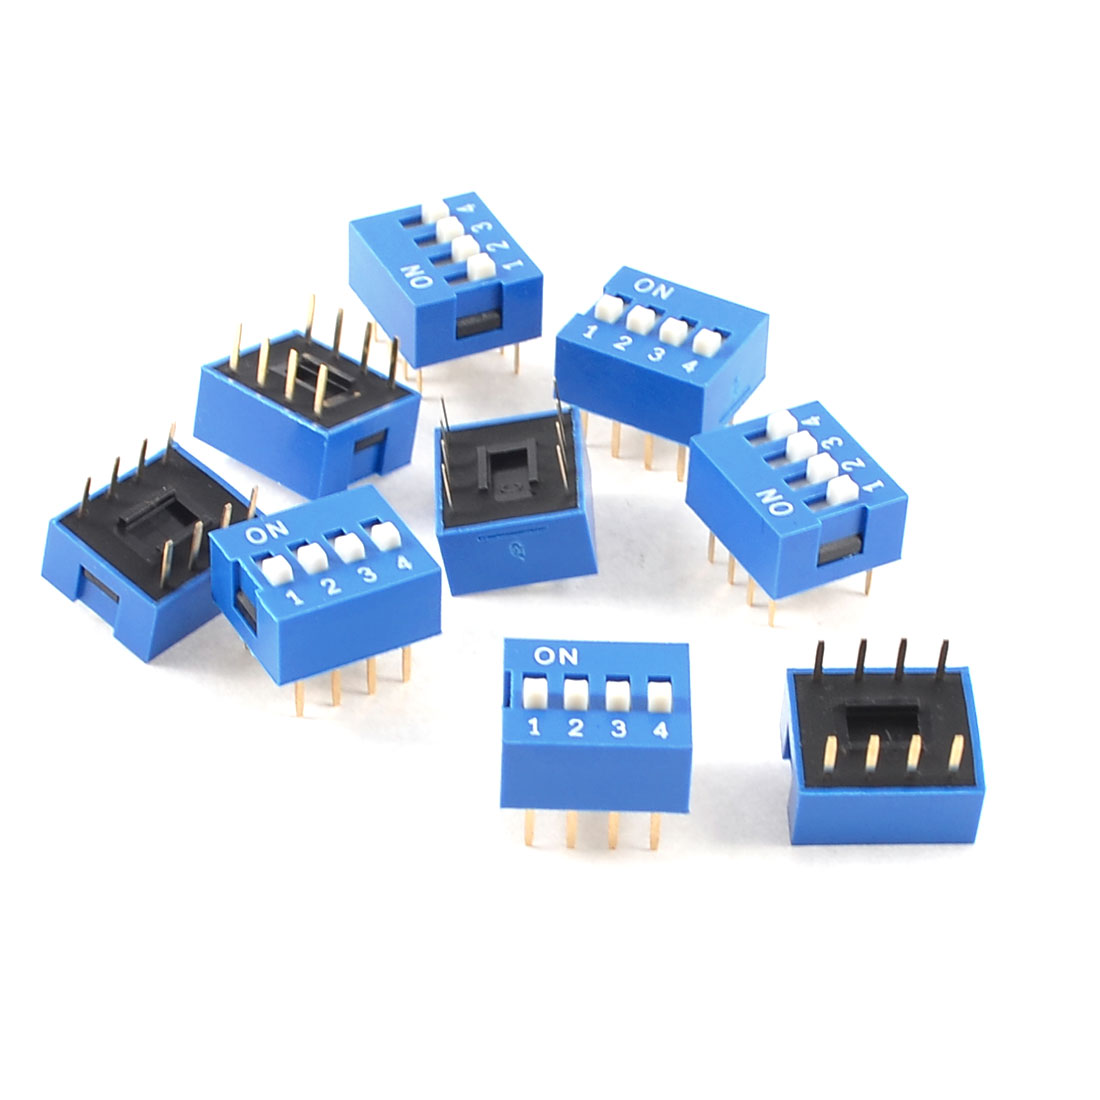 10 Pieces Blue Double Row 8 Pin 4 Positions 2.54mm Pitch DIP Switch